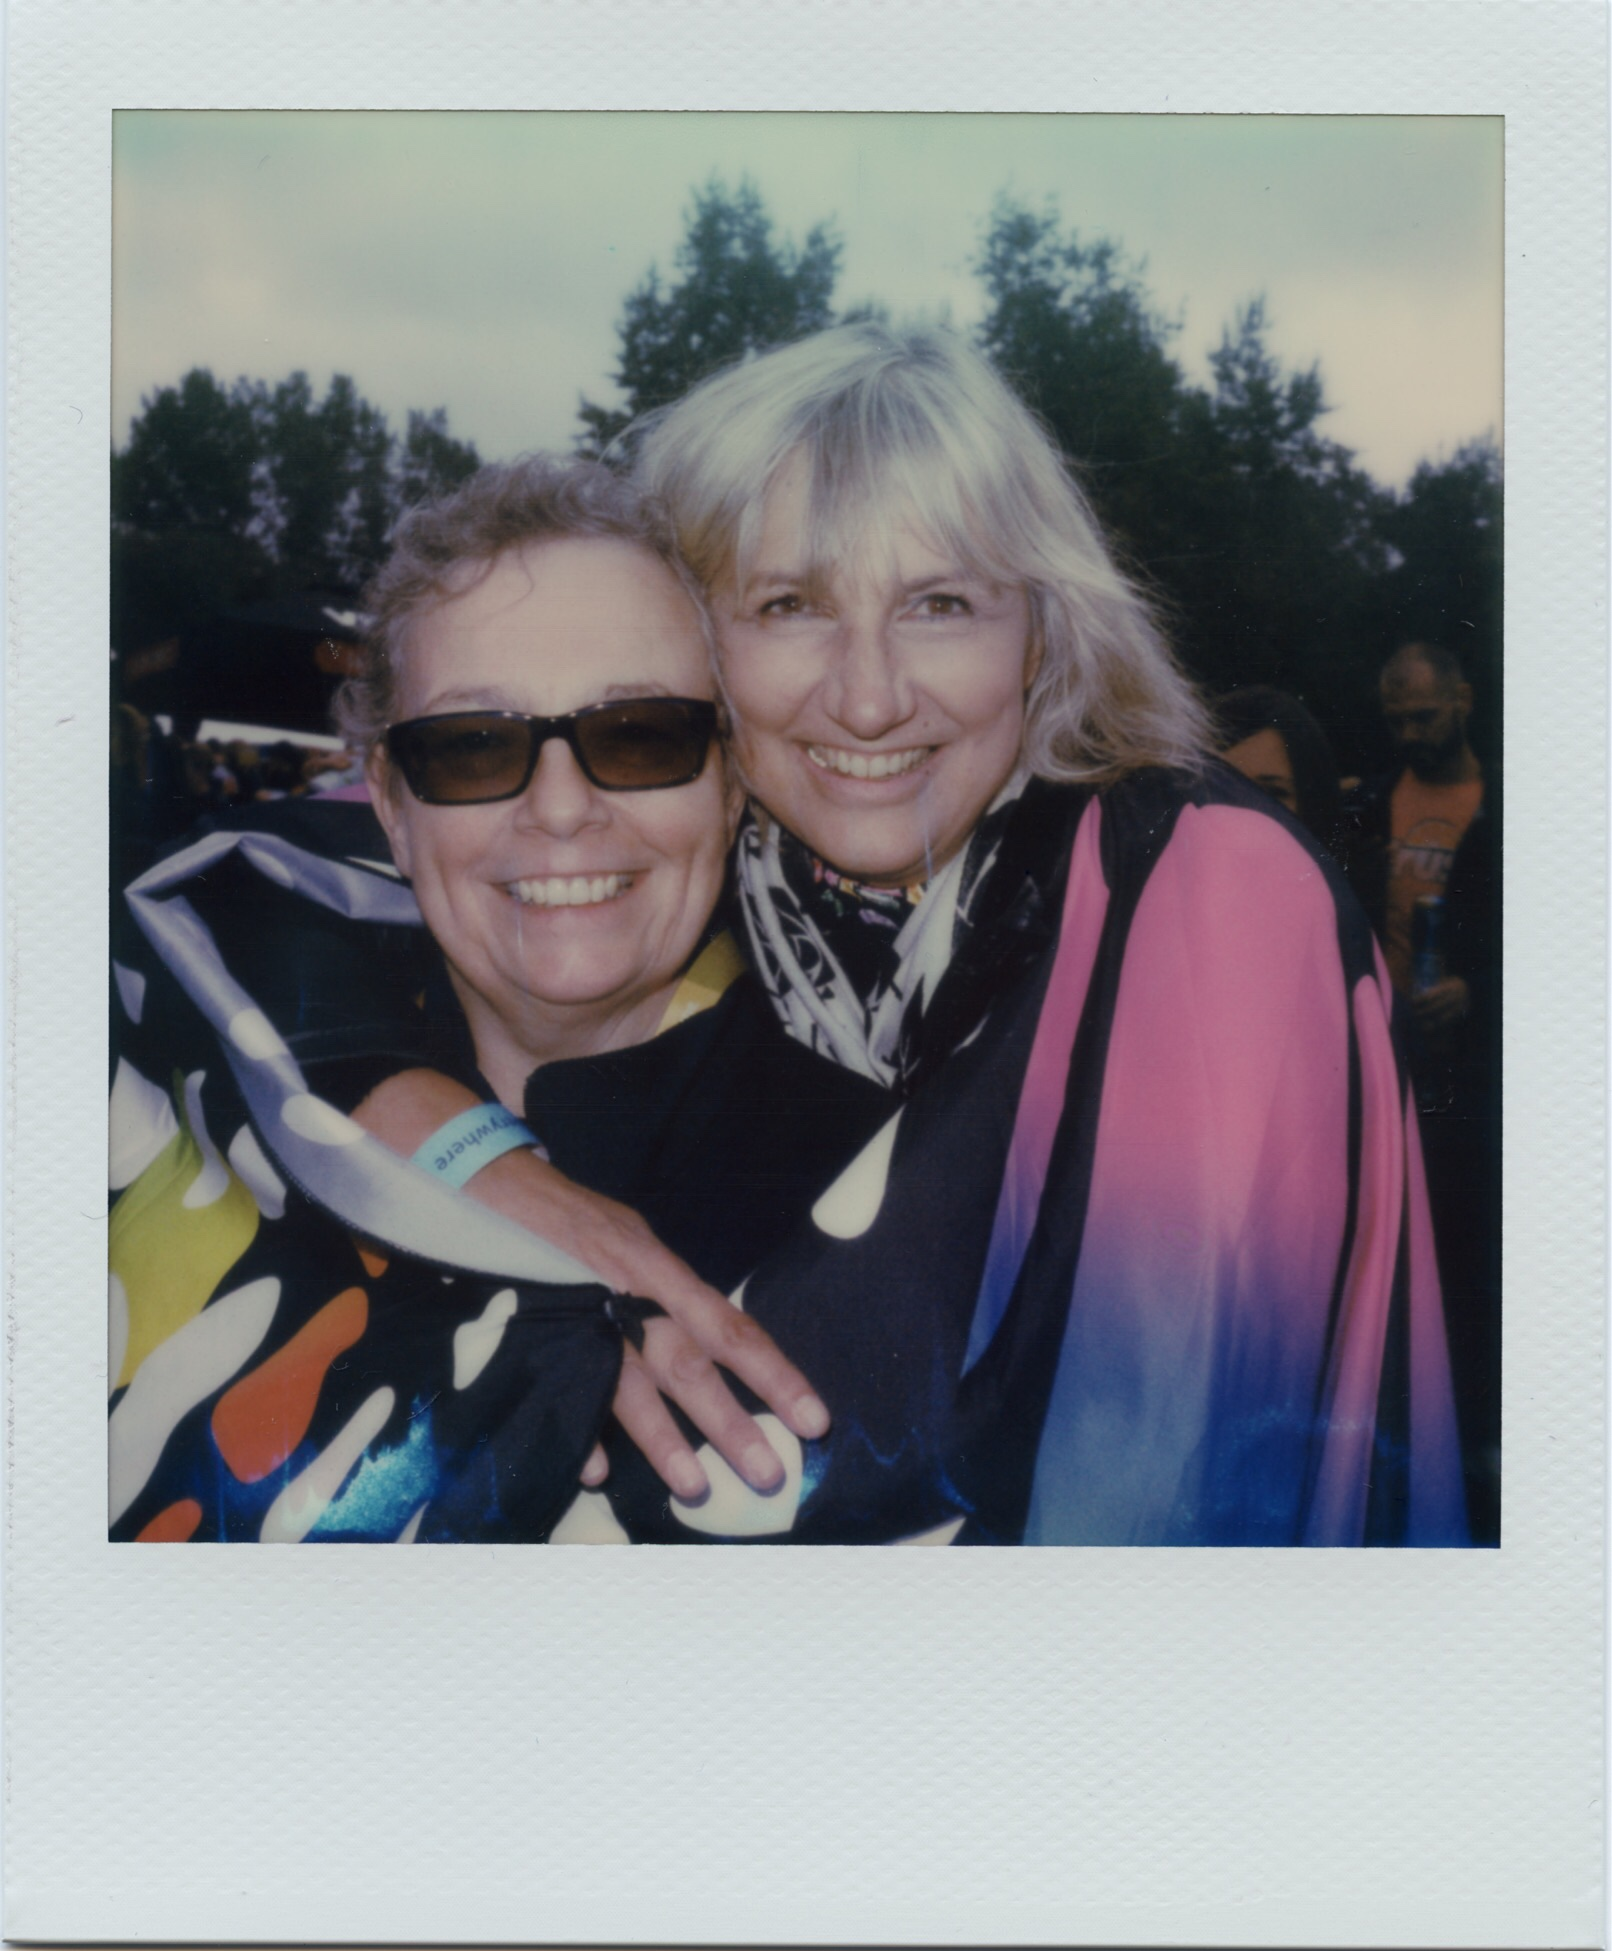 Venerable Happiness - Polaroid SLR680